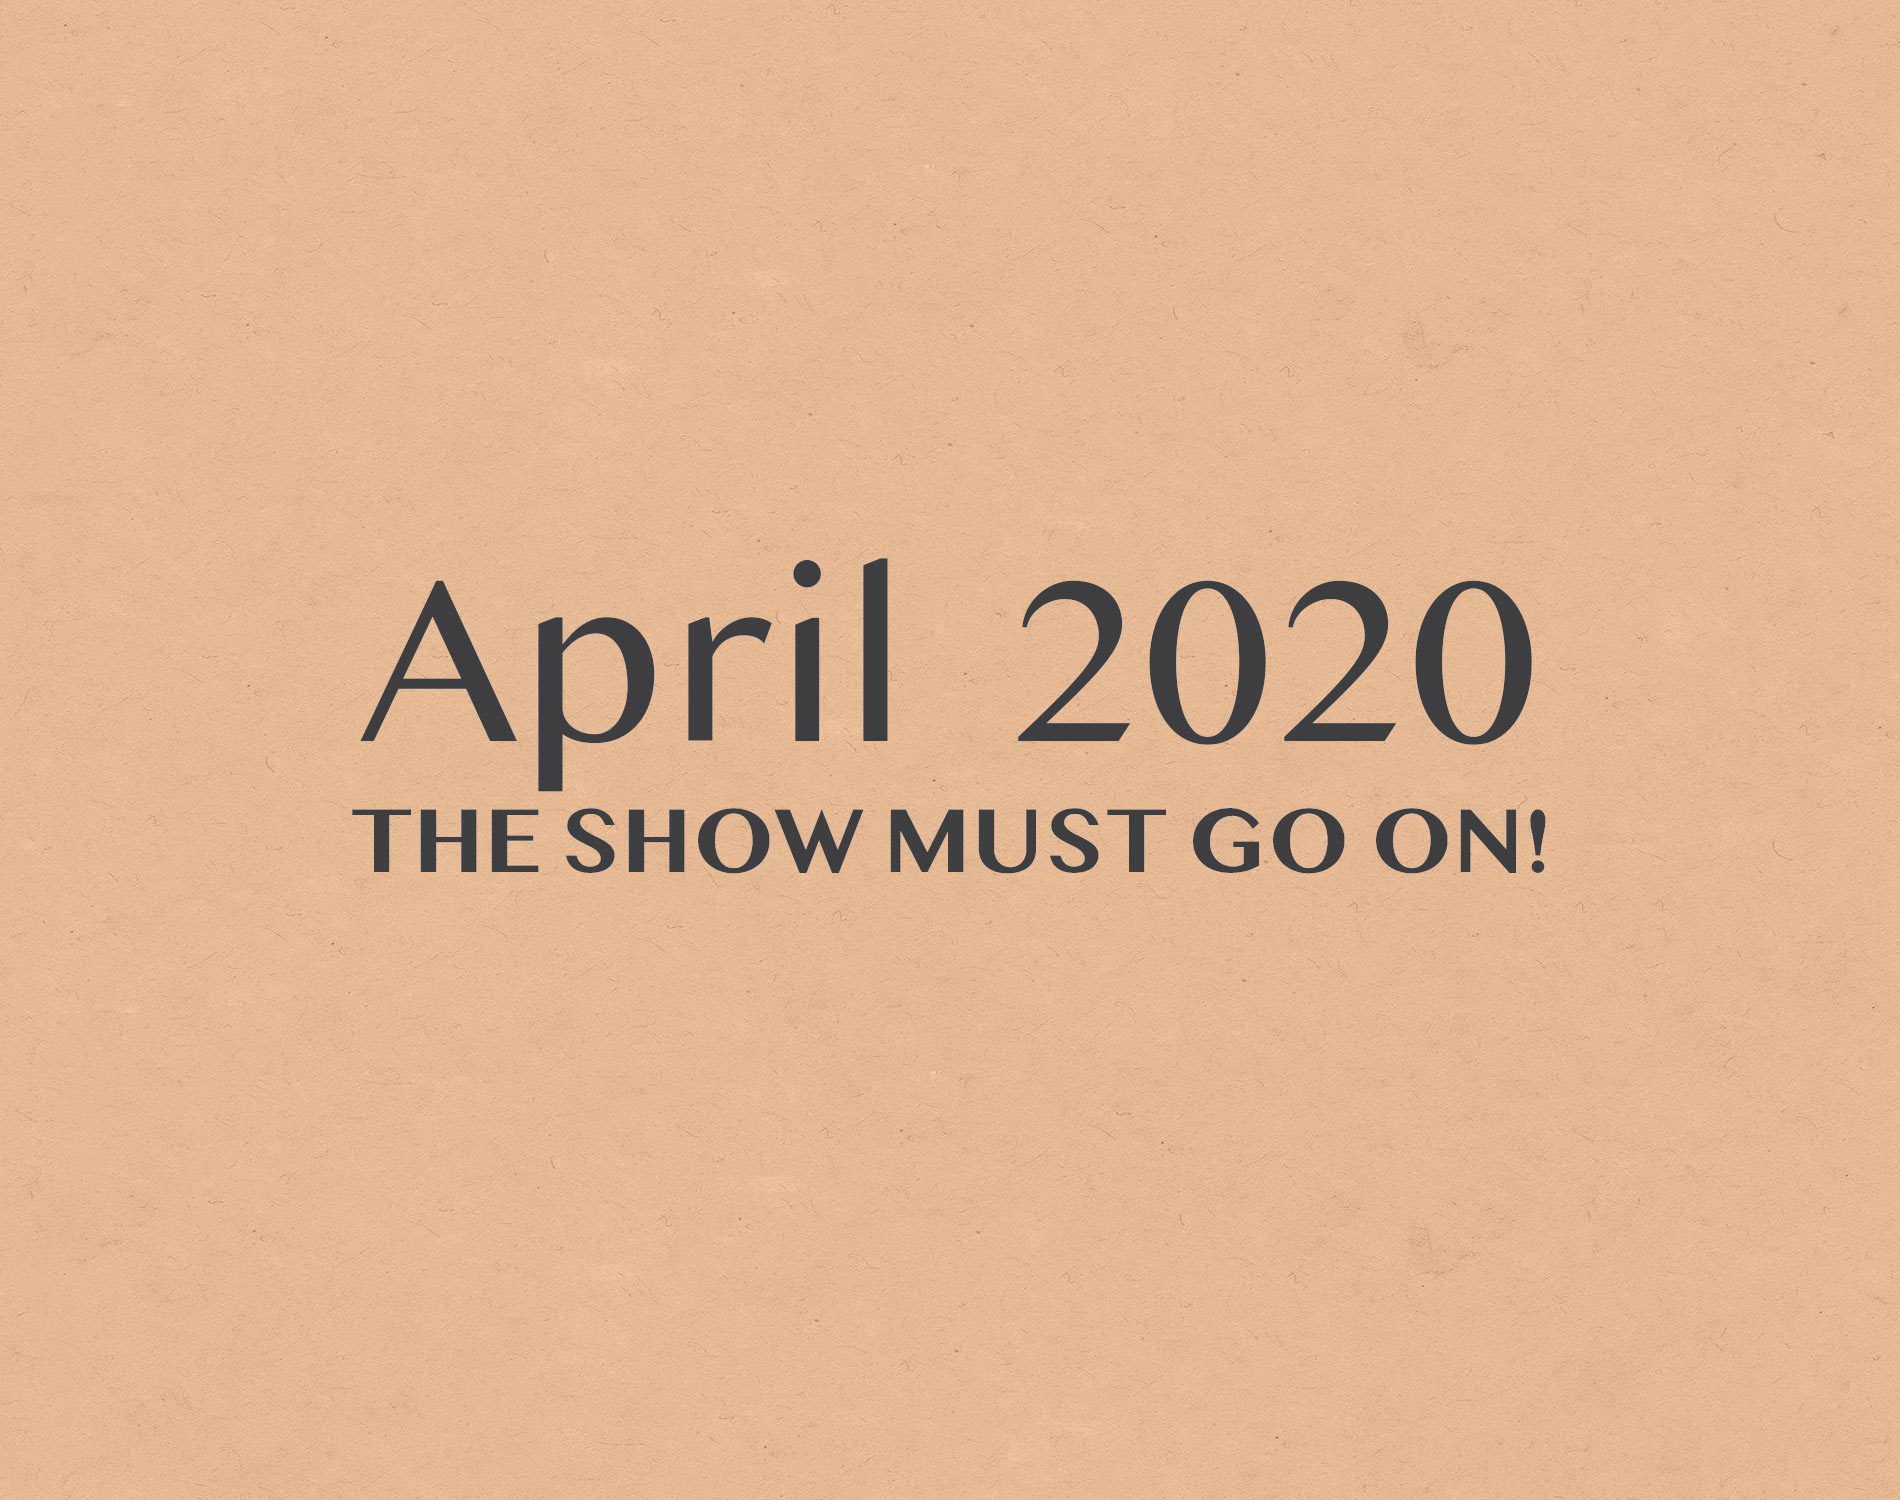 April 2020. The show must go on!